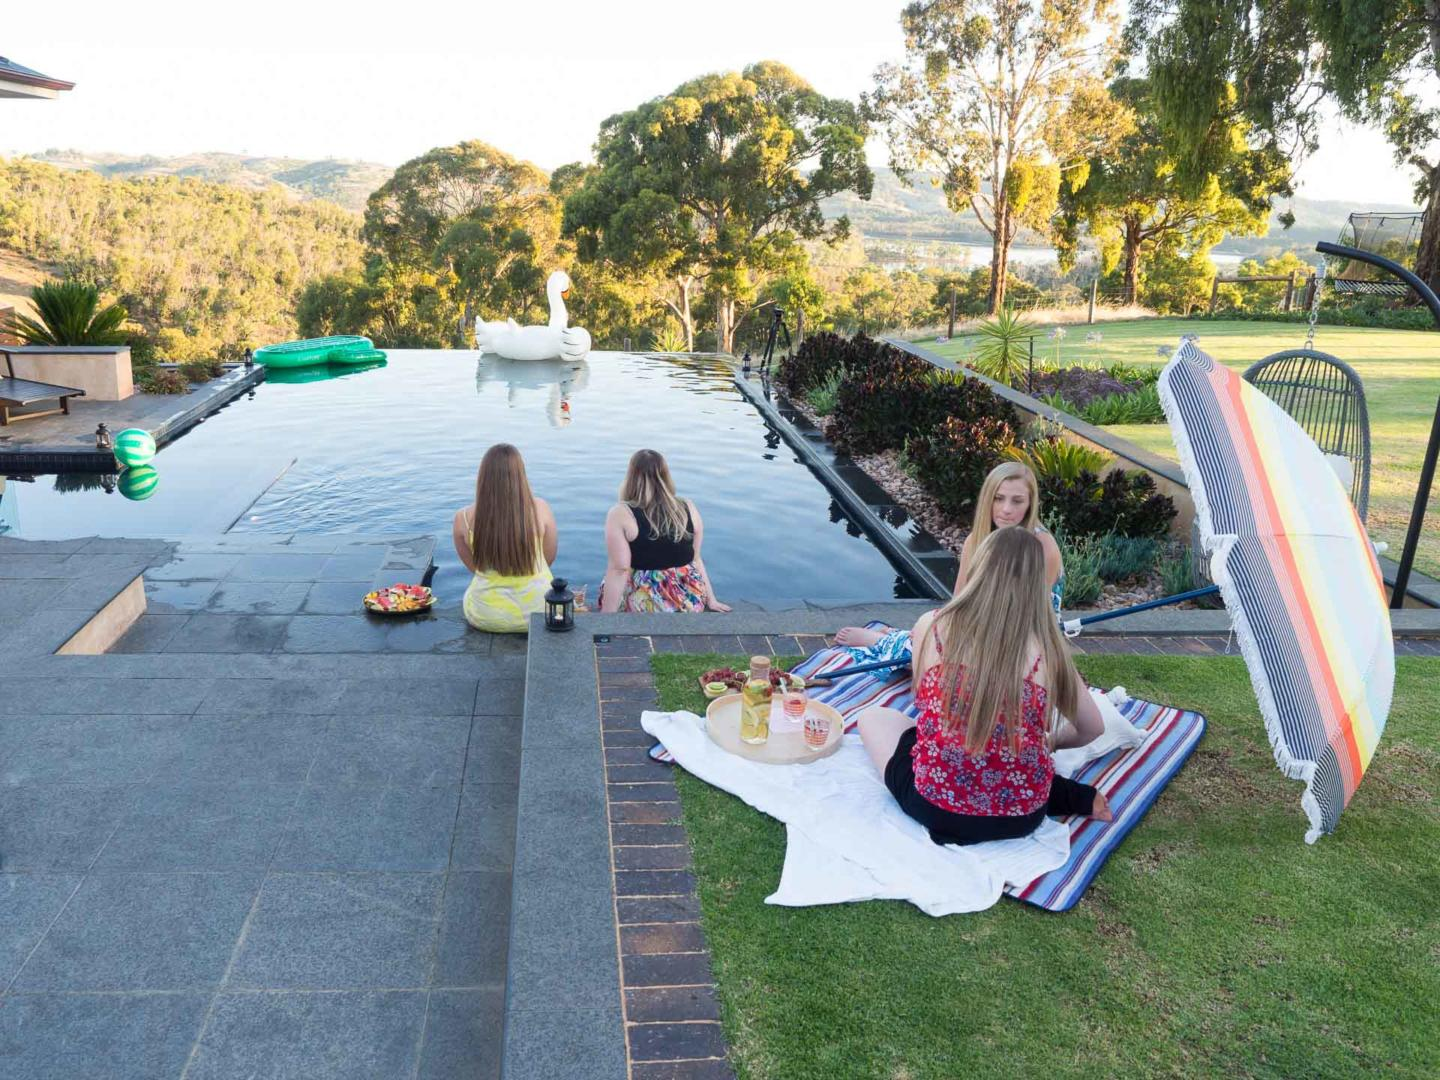 3 Awesome Themes for an Unforgettable New Year's Eve Party - NYE Pool Party, Australian Outdoor Living.